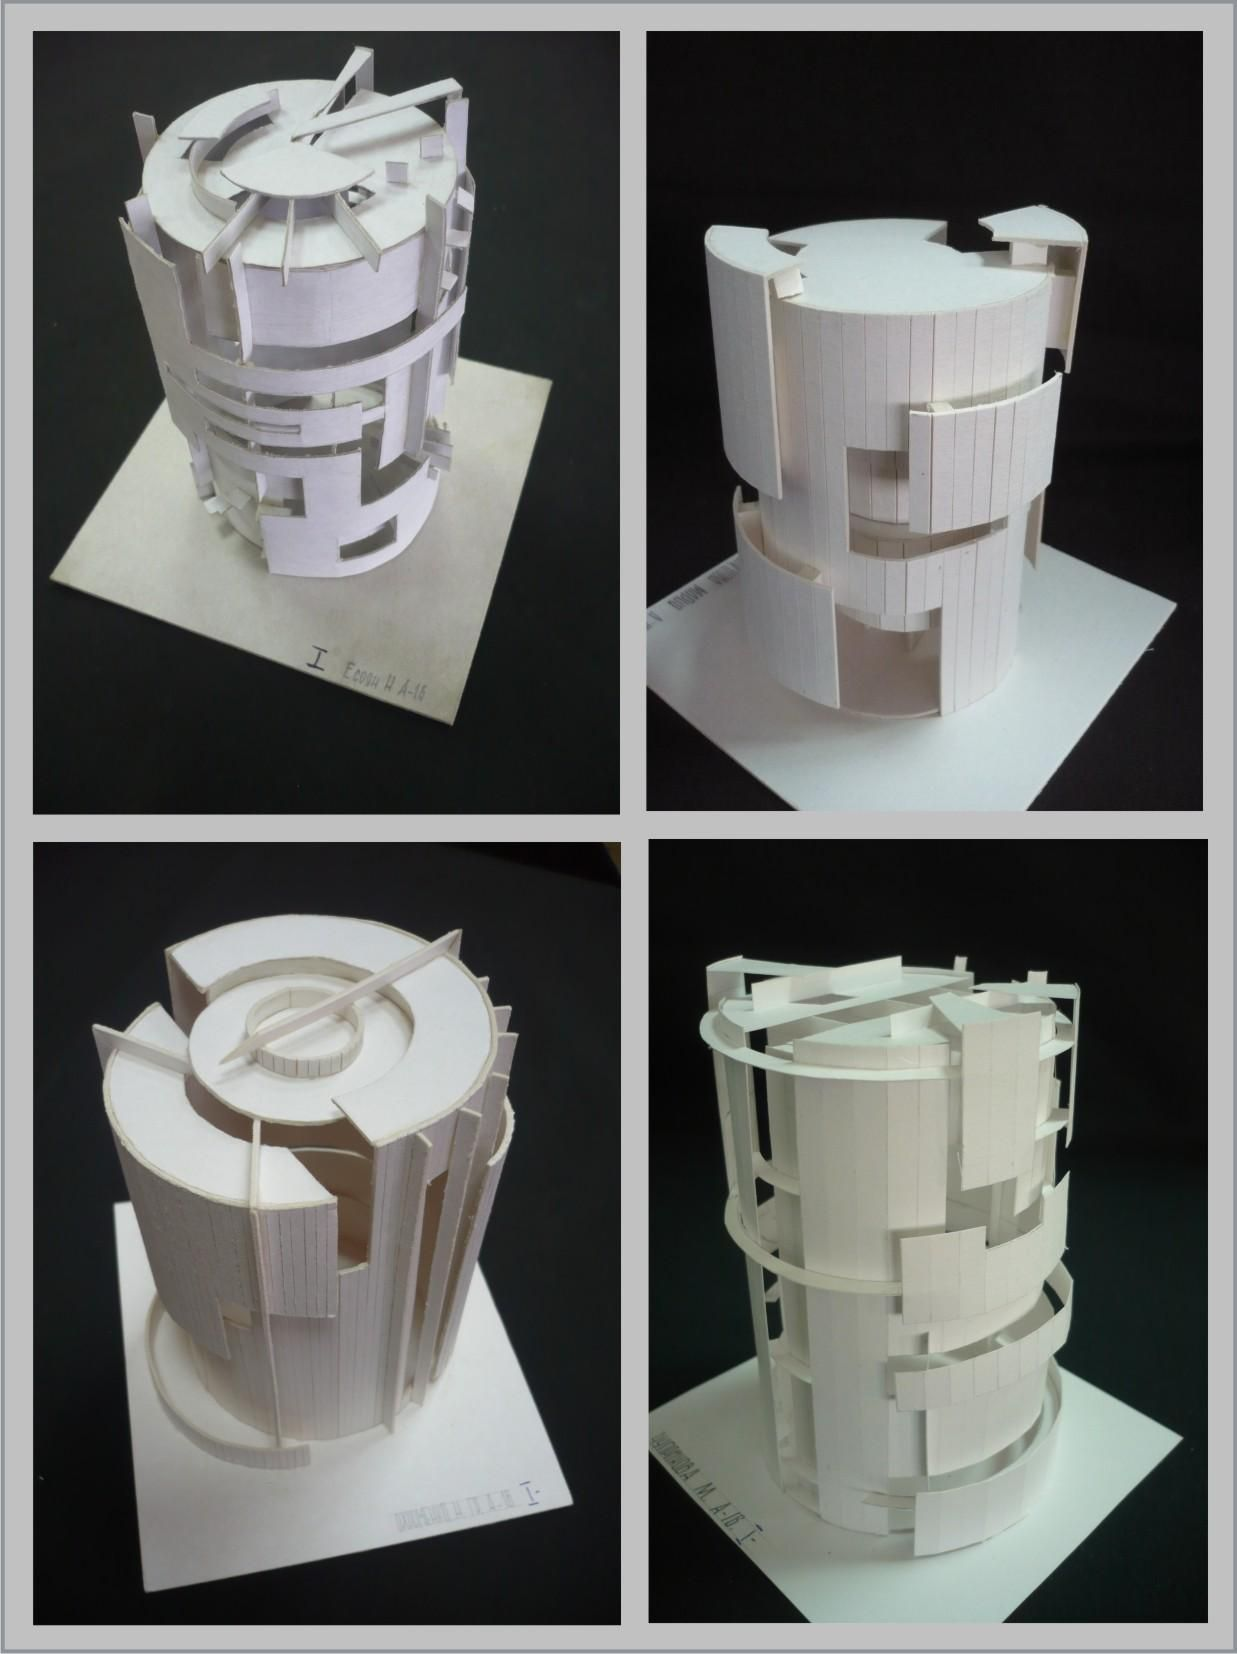 1.4. Massiveness and spatiality -  1.4. Massiveness and spatiality  - #architecturalconceptdiagram #architecturalconceptualmodel #massiveness #spatiality